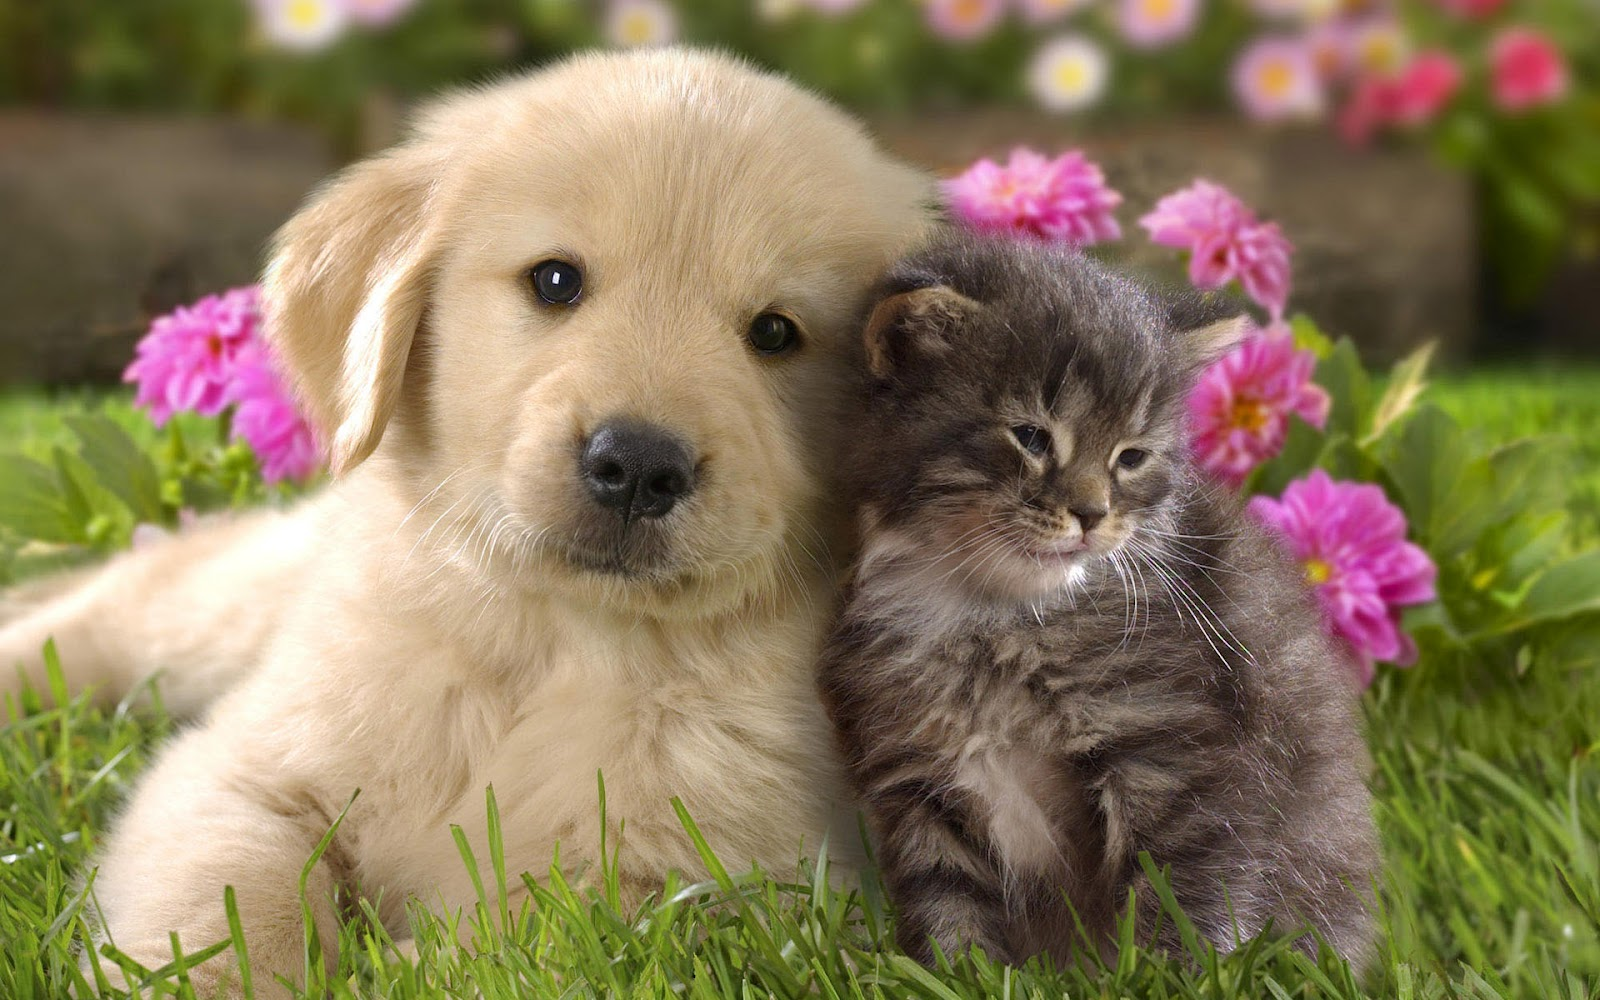 HD Dogs Wallpapers and Photos HD Animals Wallpapers 1600x1000